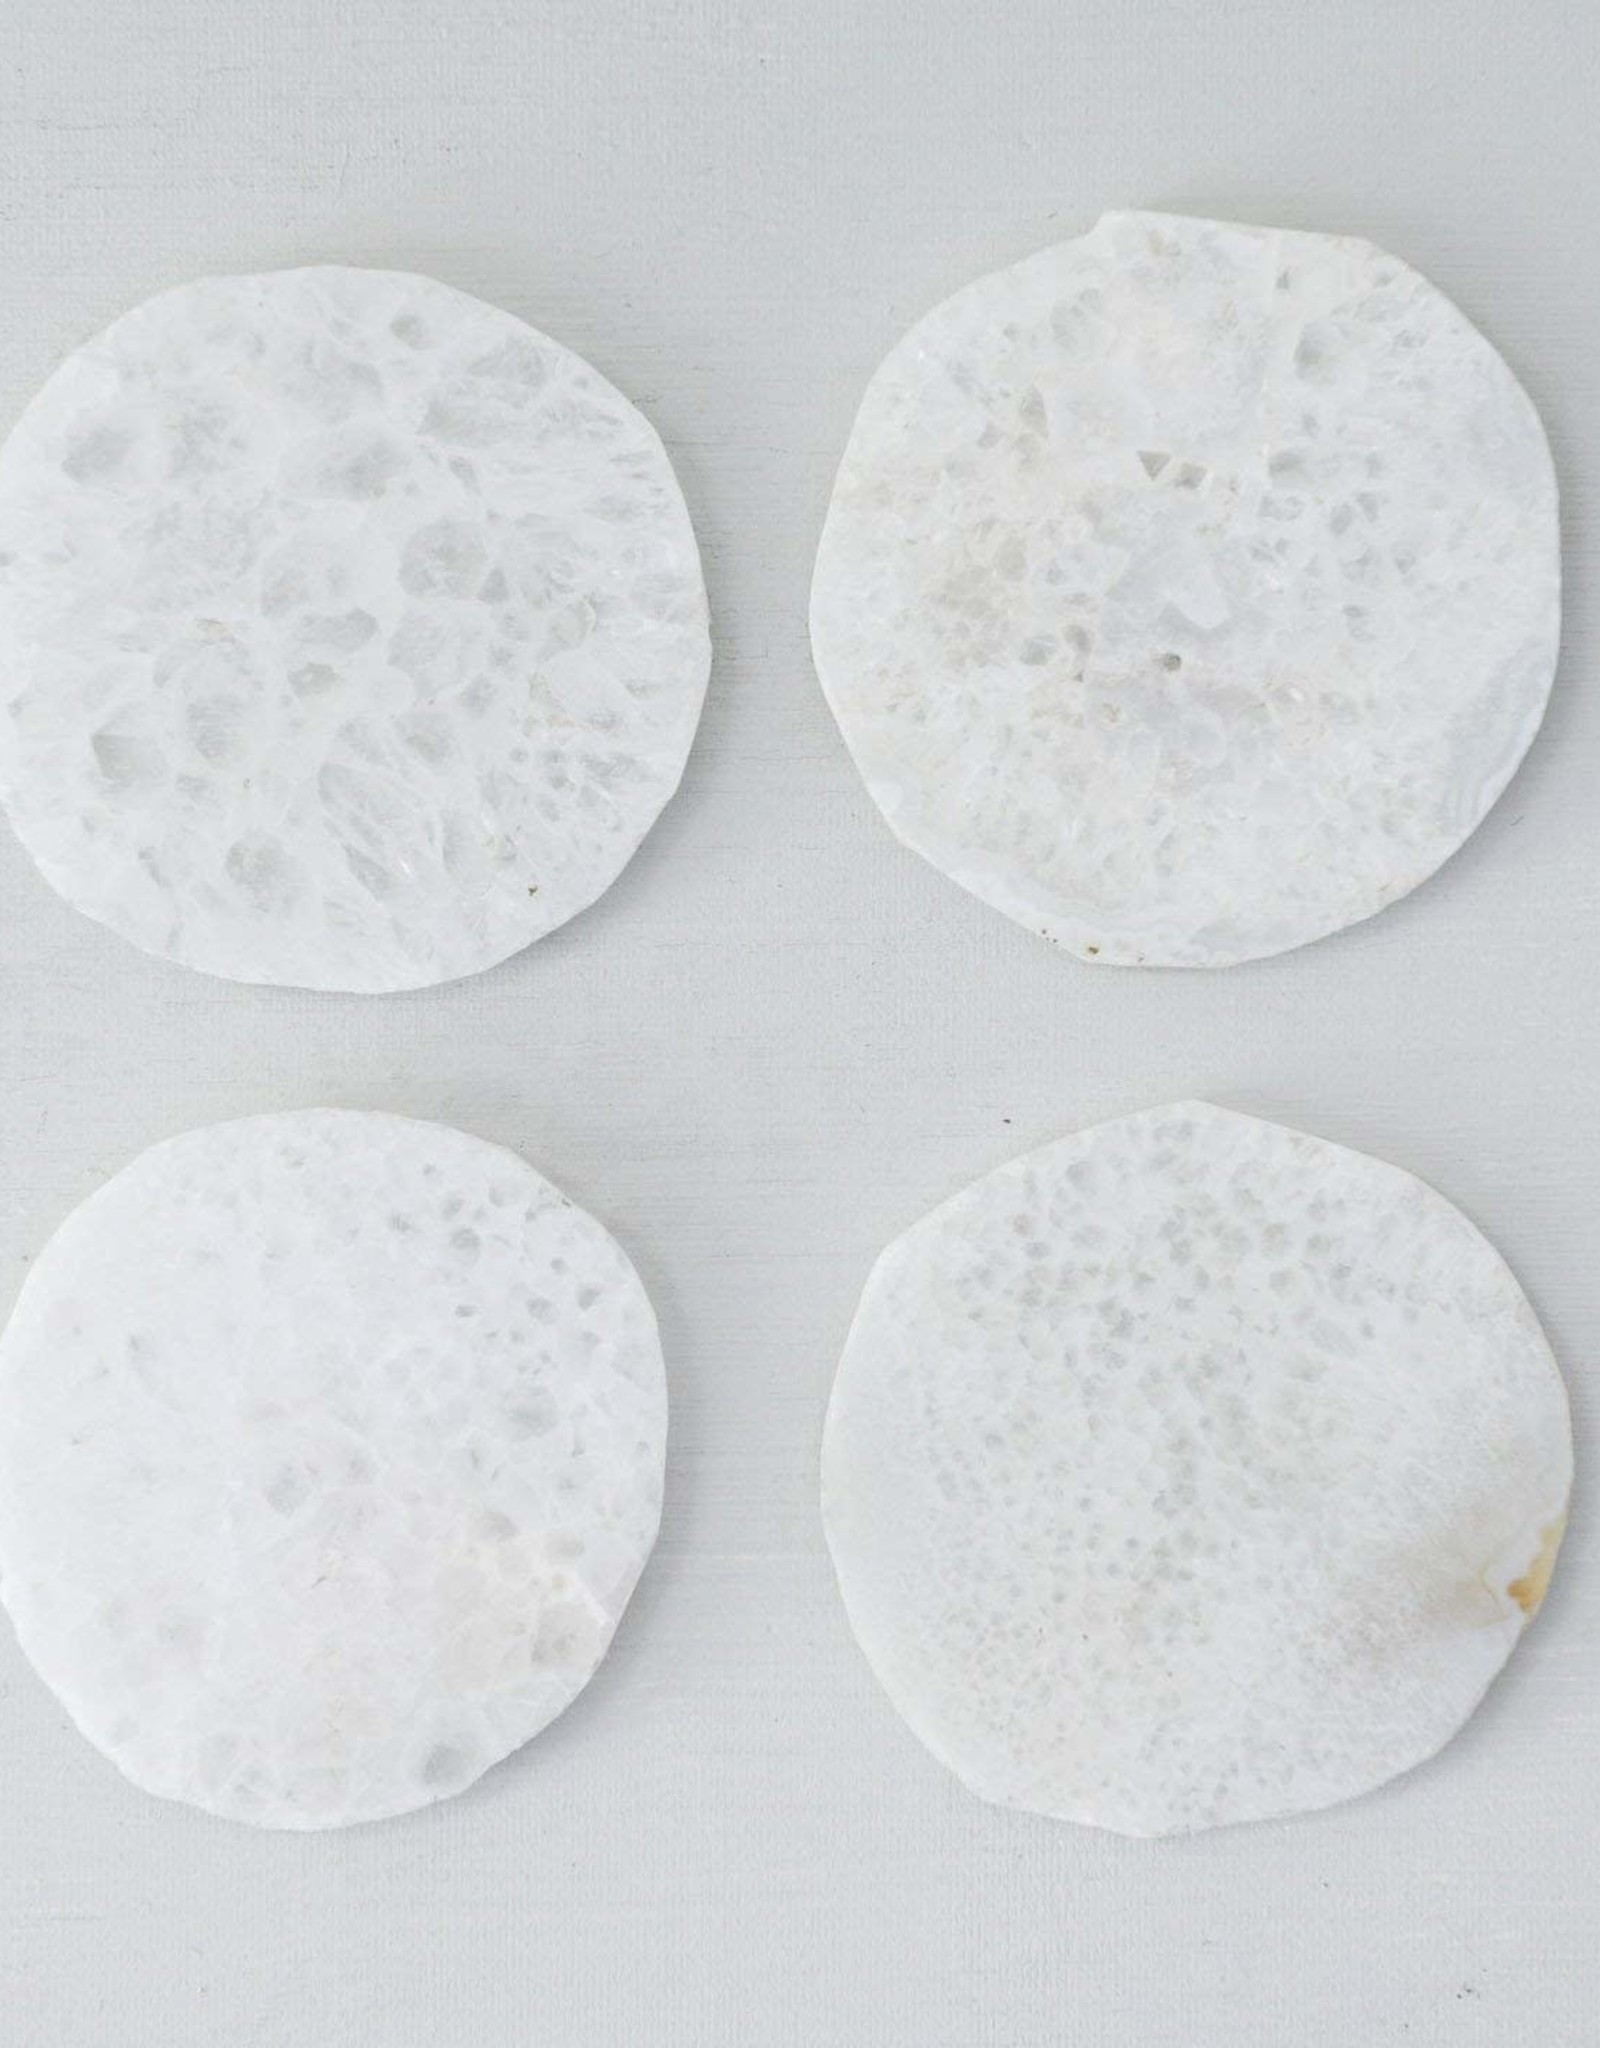 White Quartz Coaster - Set of 4